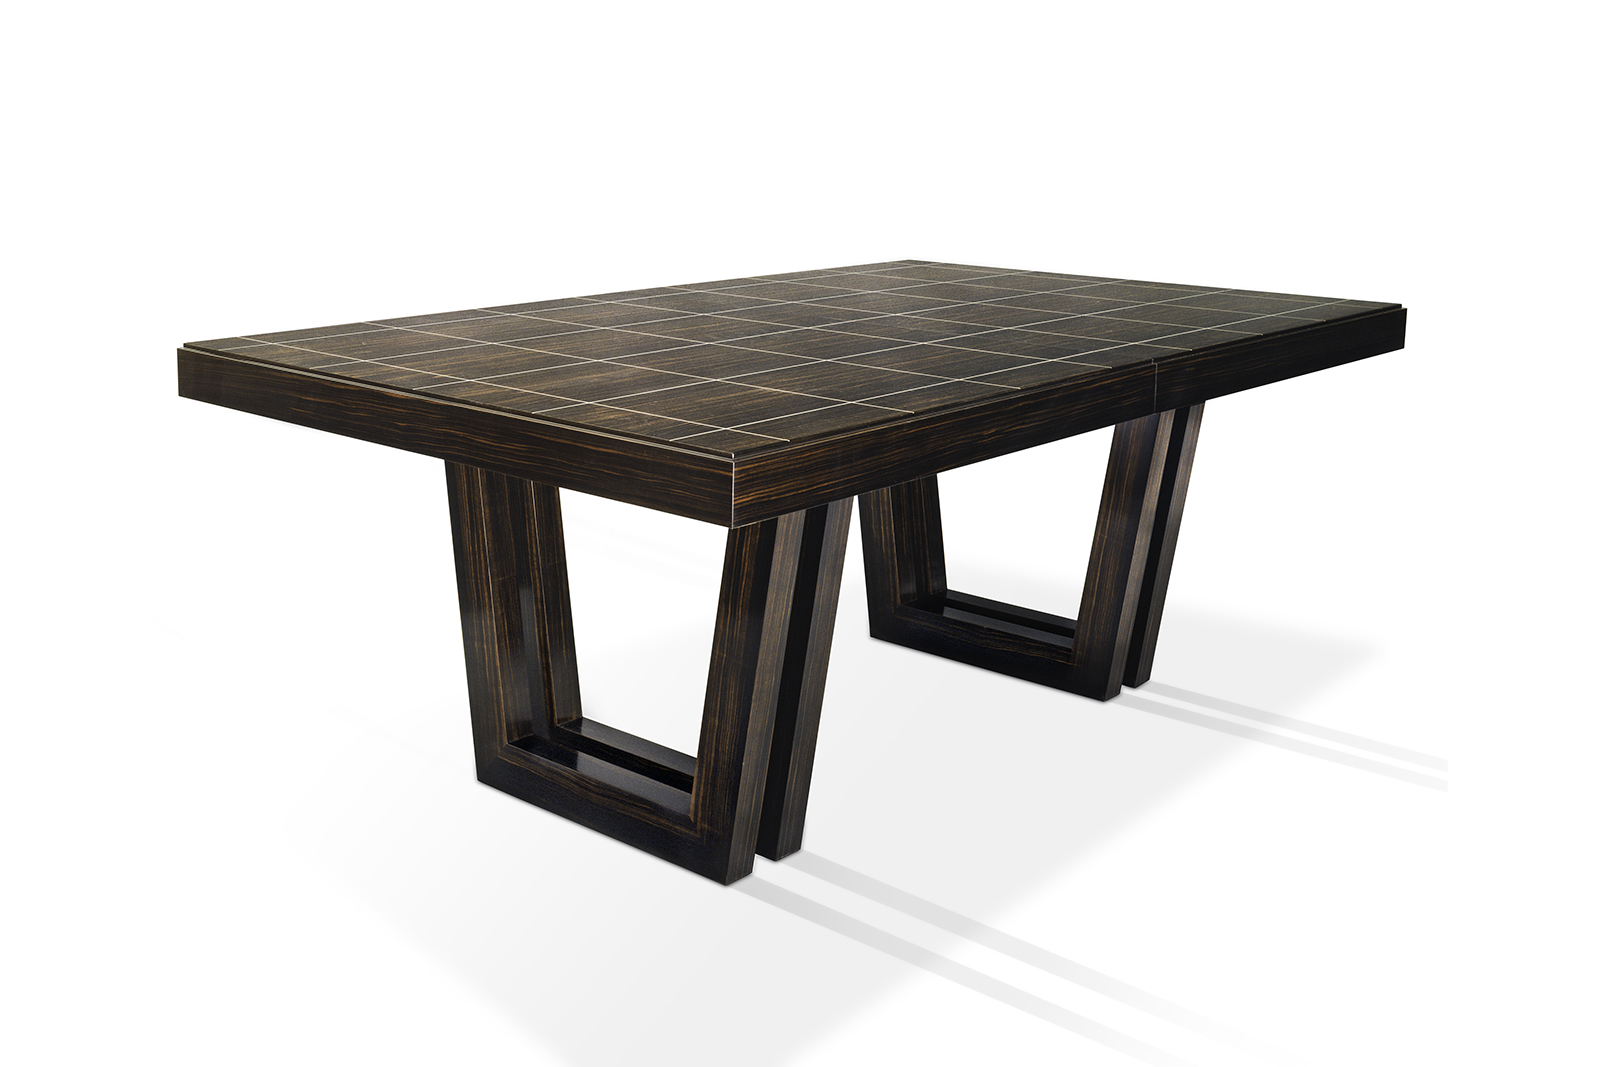 Dining Table In Macassar Ebony With Bone Inlay